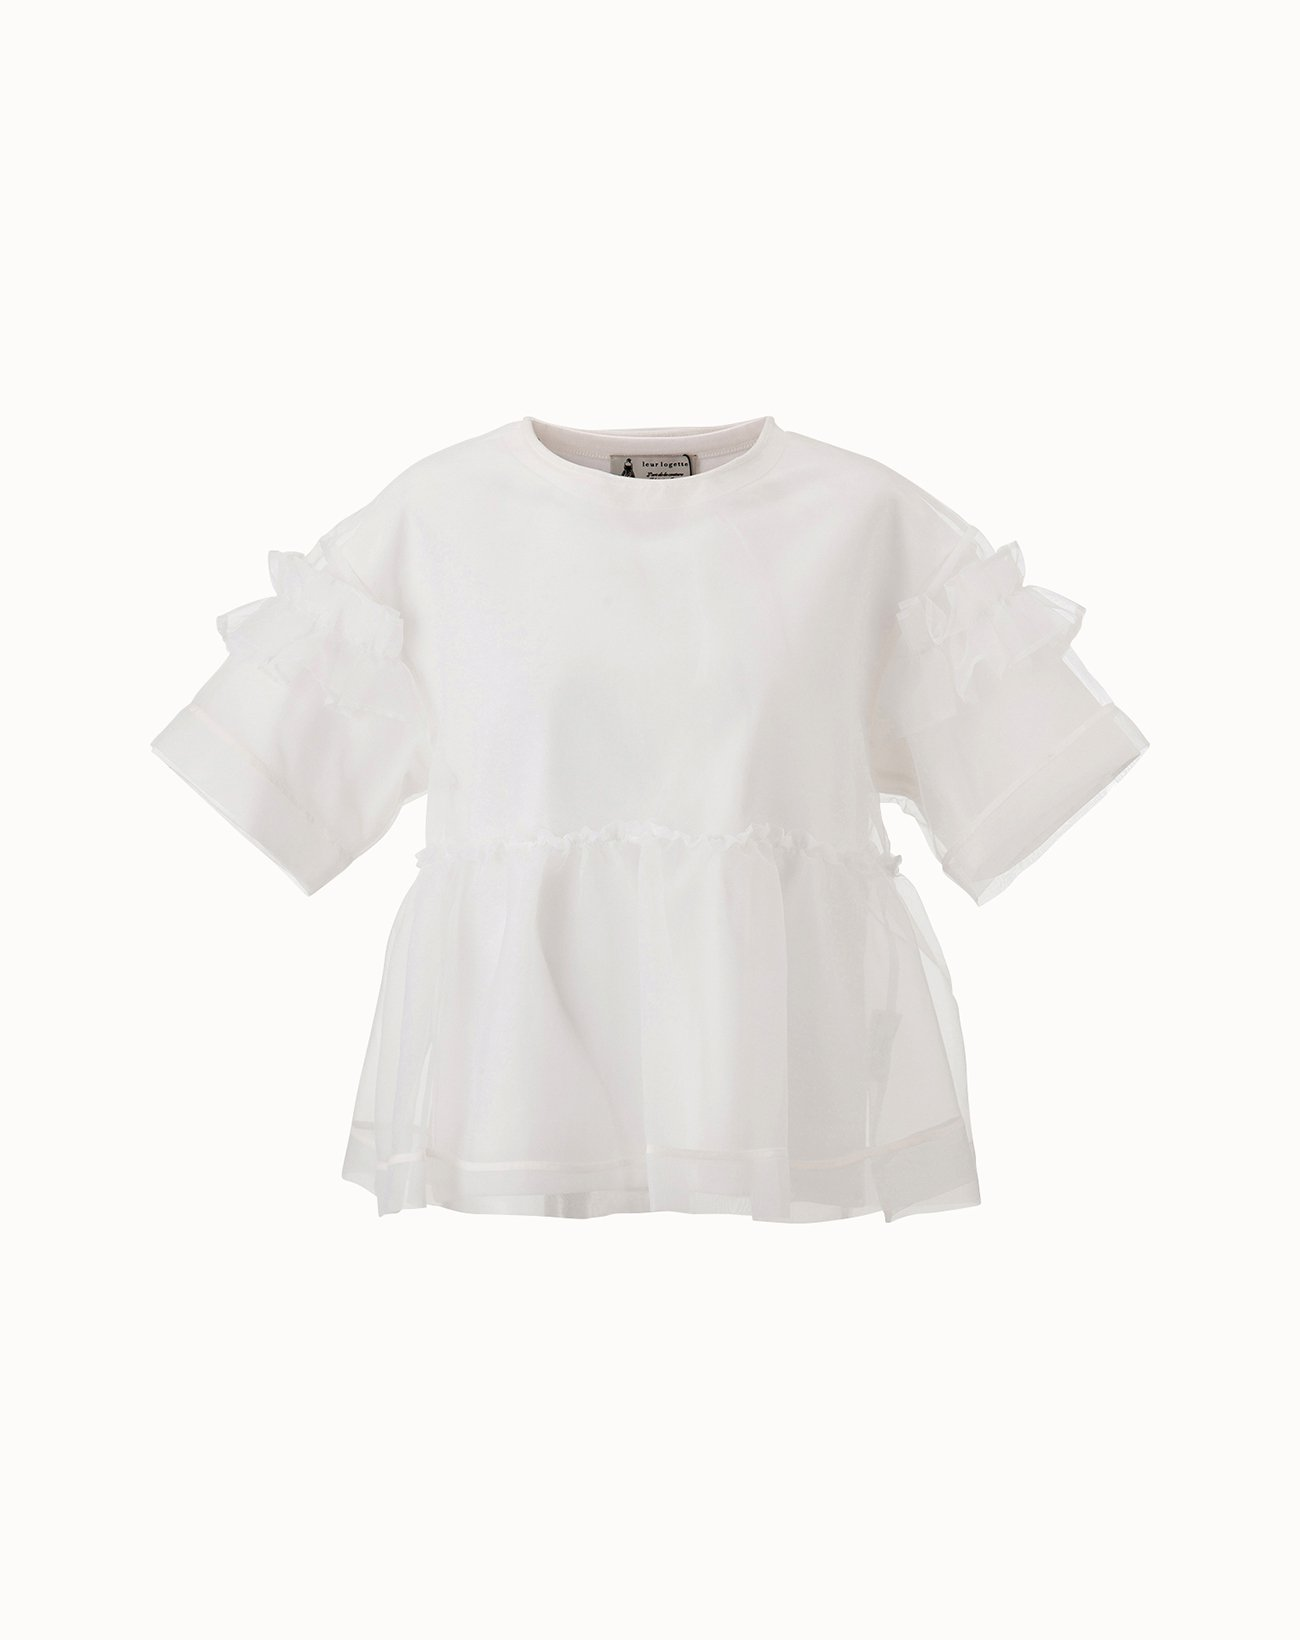 Organdy Layered Top - Off White